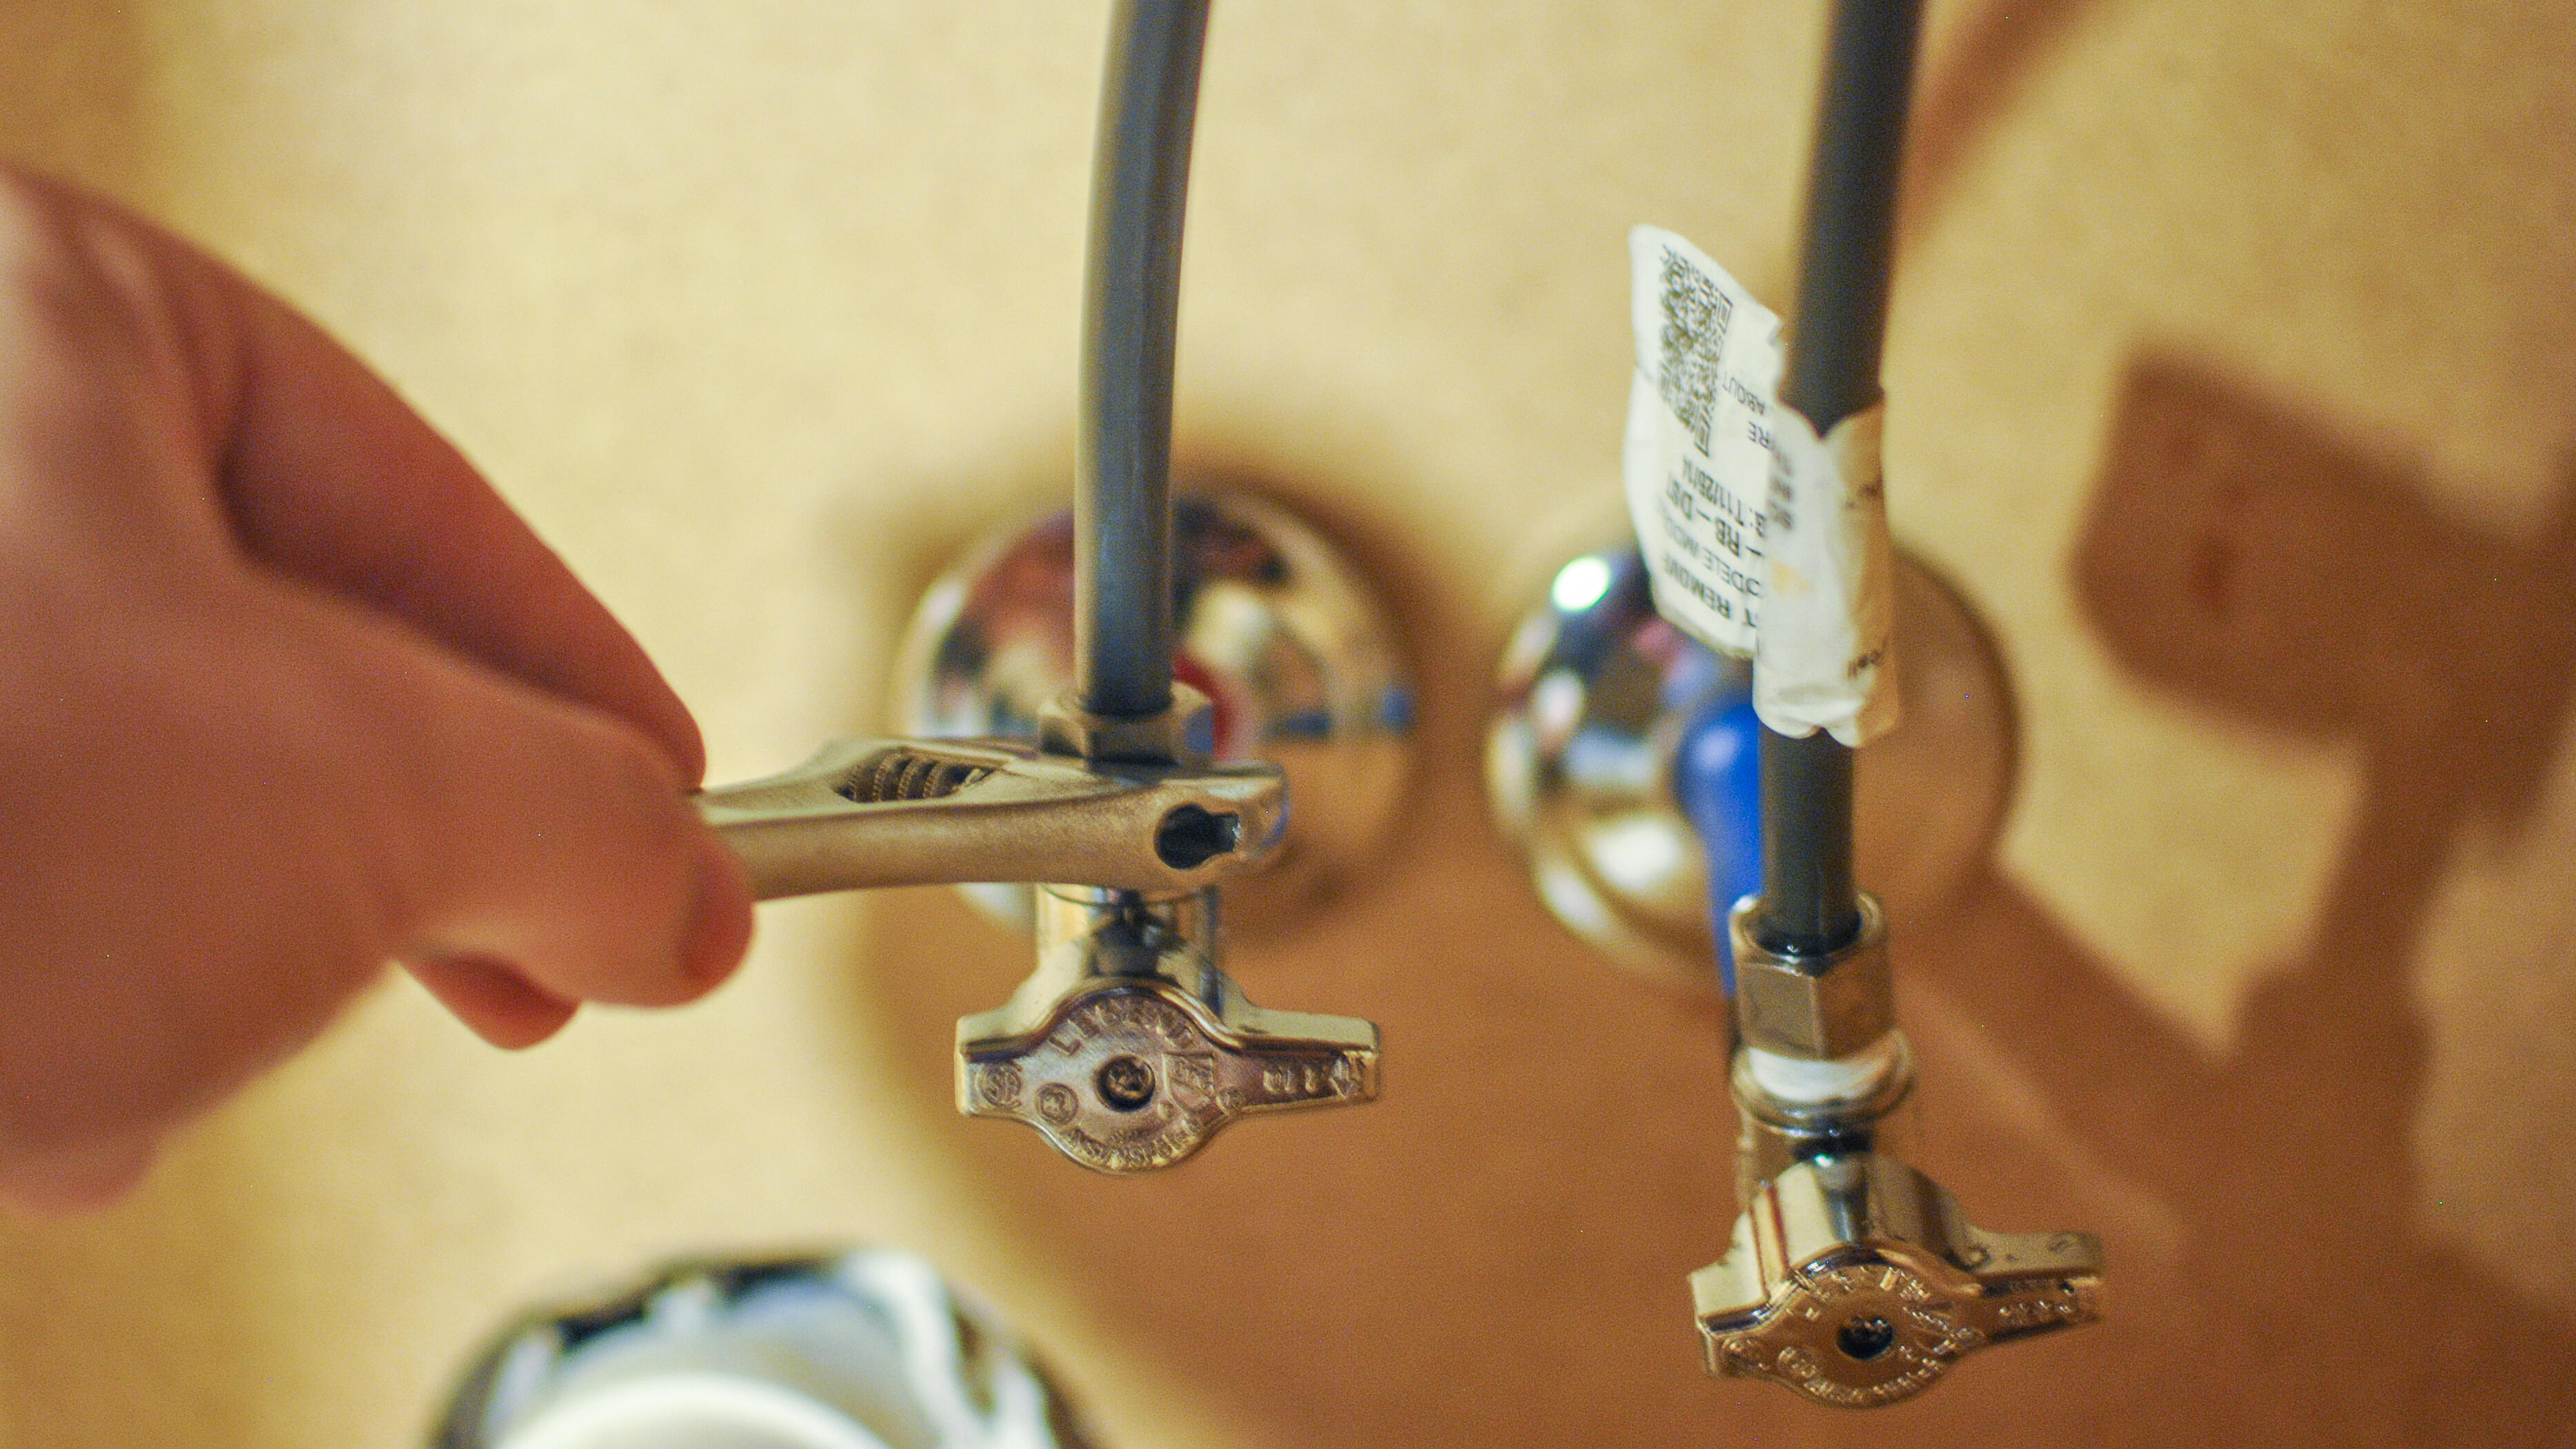 chance-lane-faucet-install-5